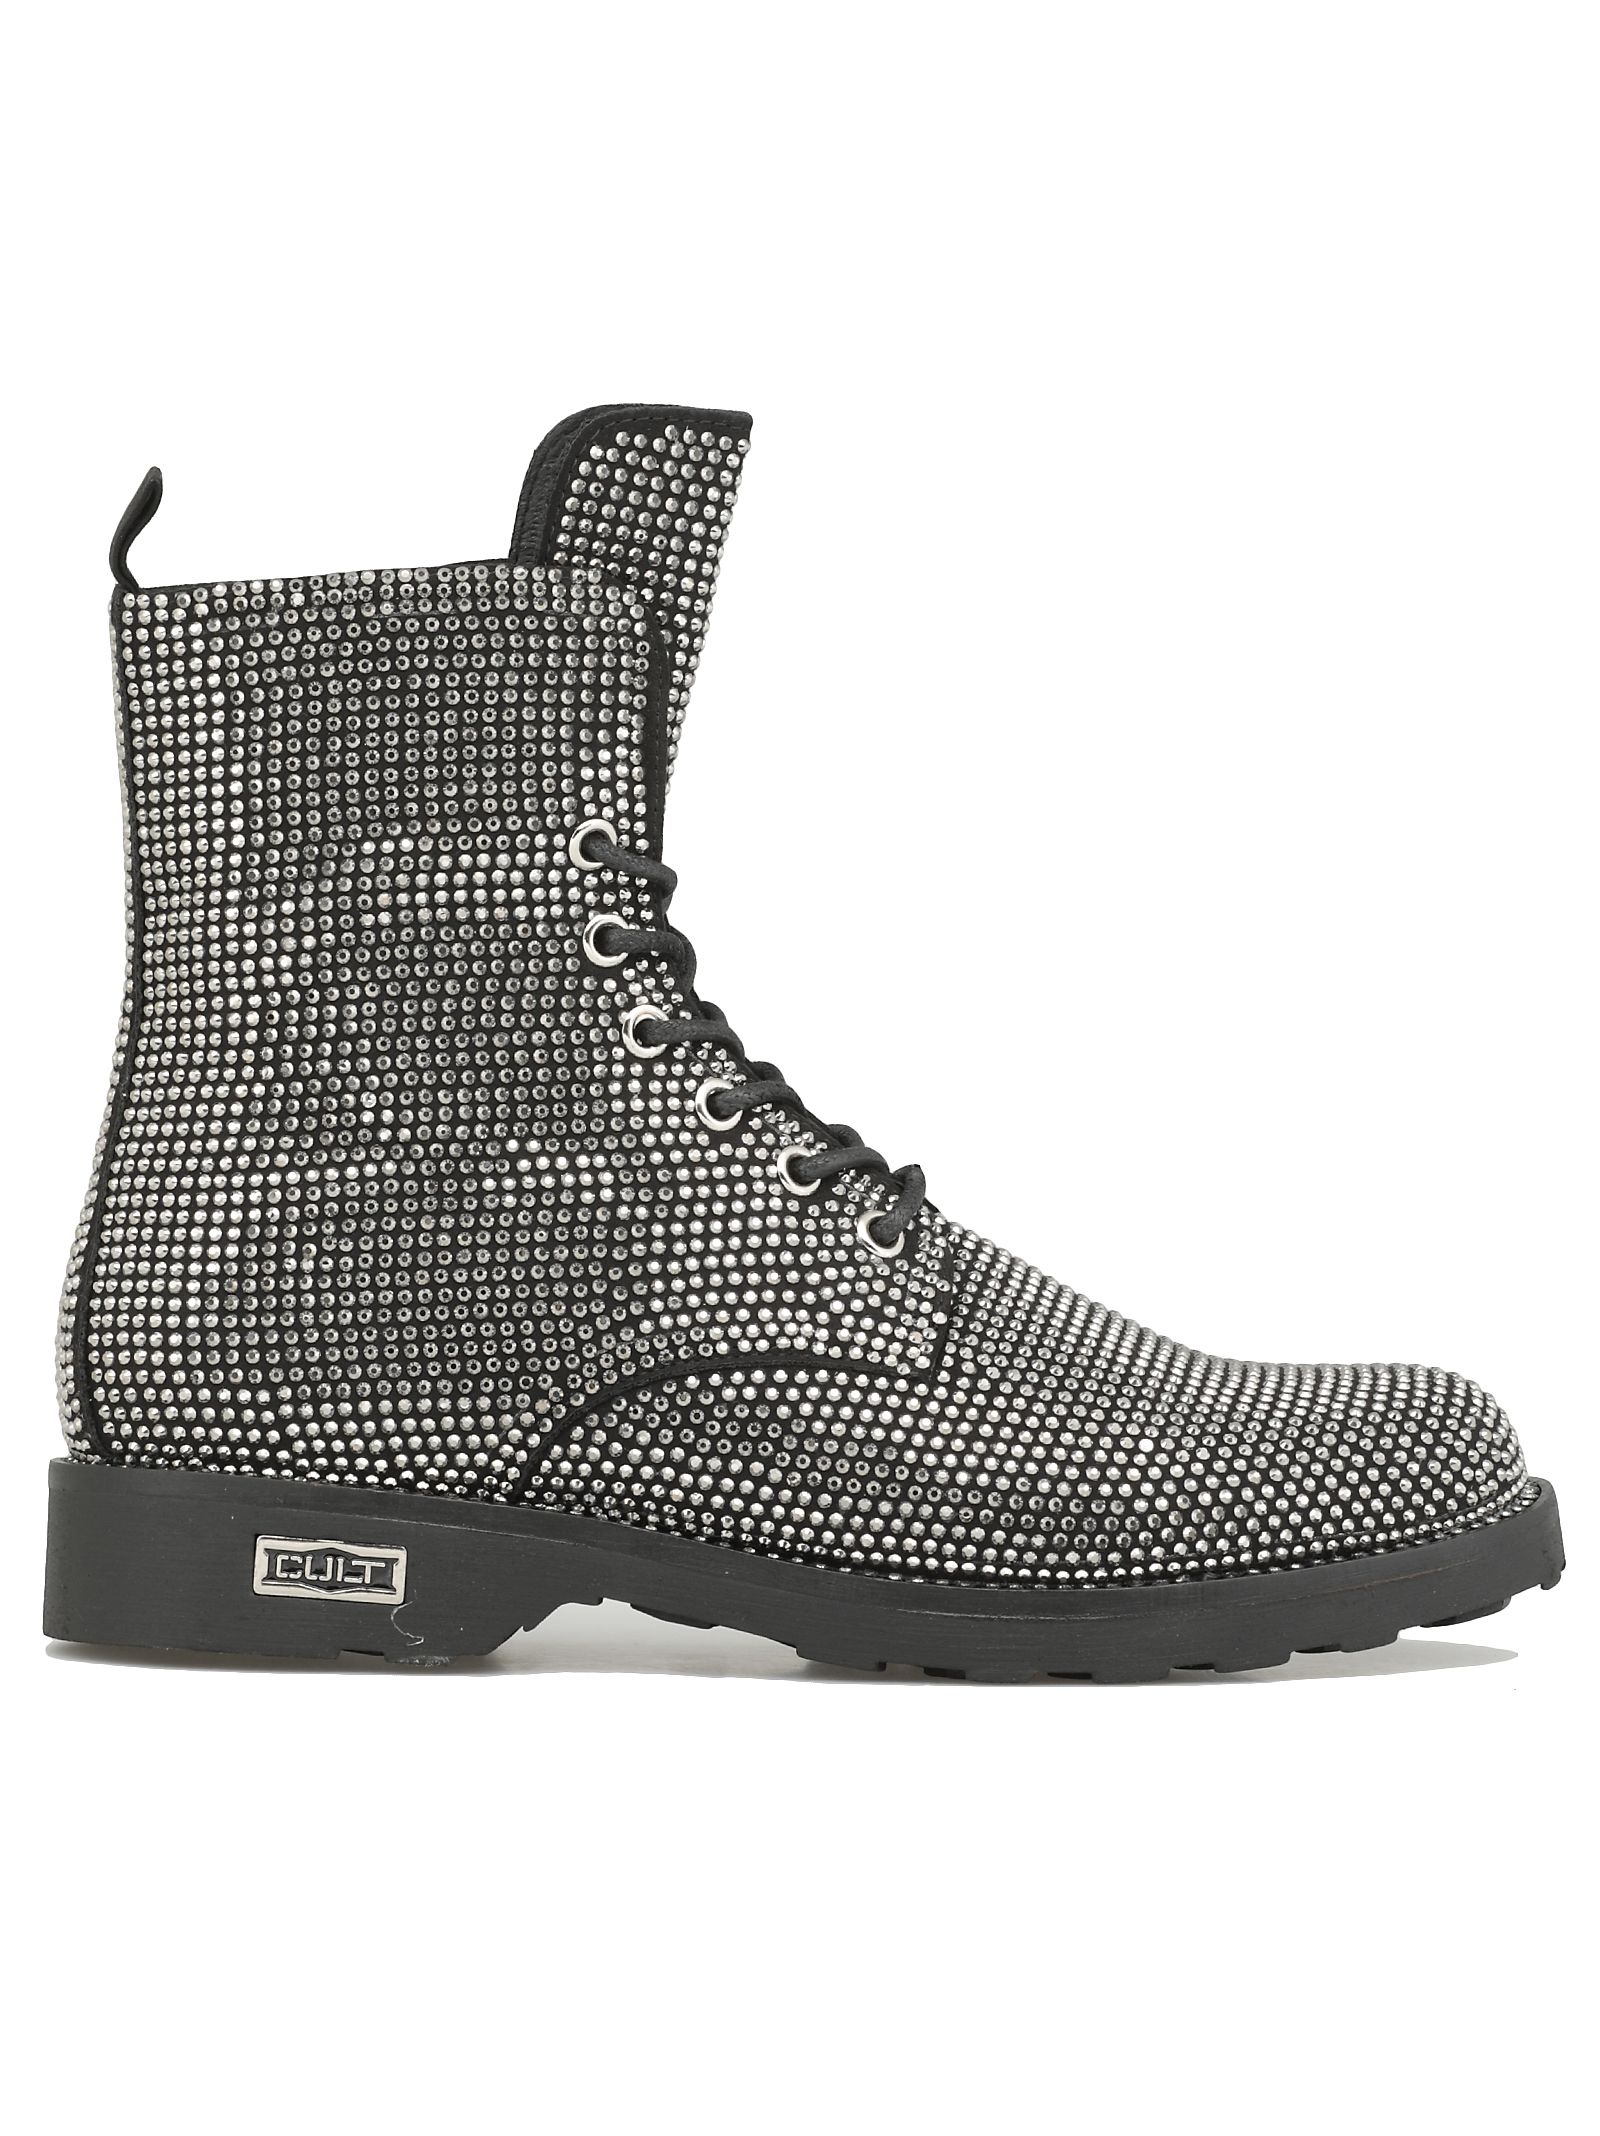 CULT Zeppelin Mid 2688 Army Boot in Silver